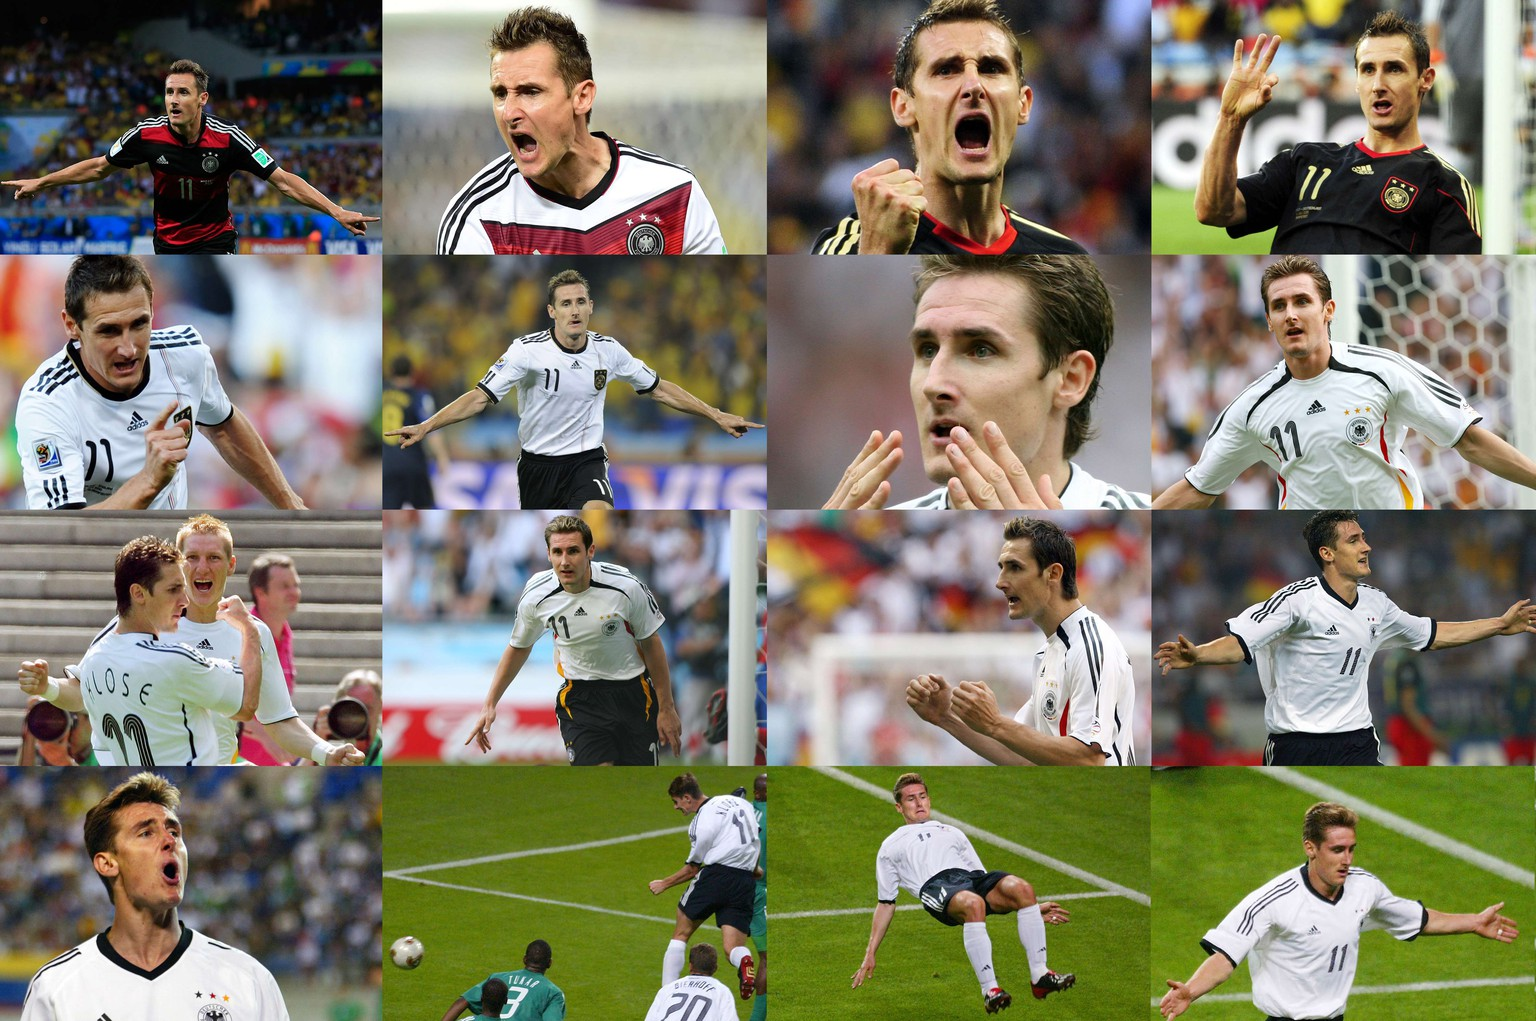 A combination of pictures of goals shows Germany's forward Miroslav Klose becoming the leading all time World Cup goal scorer after scoring in the semi-final of the 2014 FIFA World Cup against Brazil in Belo Horizonte on July 8, 2014. The pictures show from bottom (R-L) in ascending order the 5 goals scored from the 2002 World Cup, 5 goals from the 2006 World Cup, 4 goals from the 2010 World Cup and 2 in the 2014 World Cup.